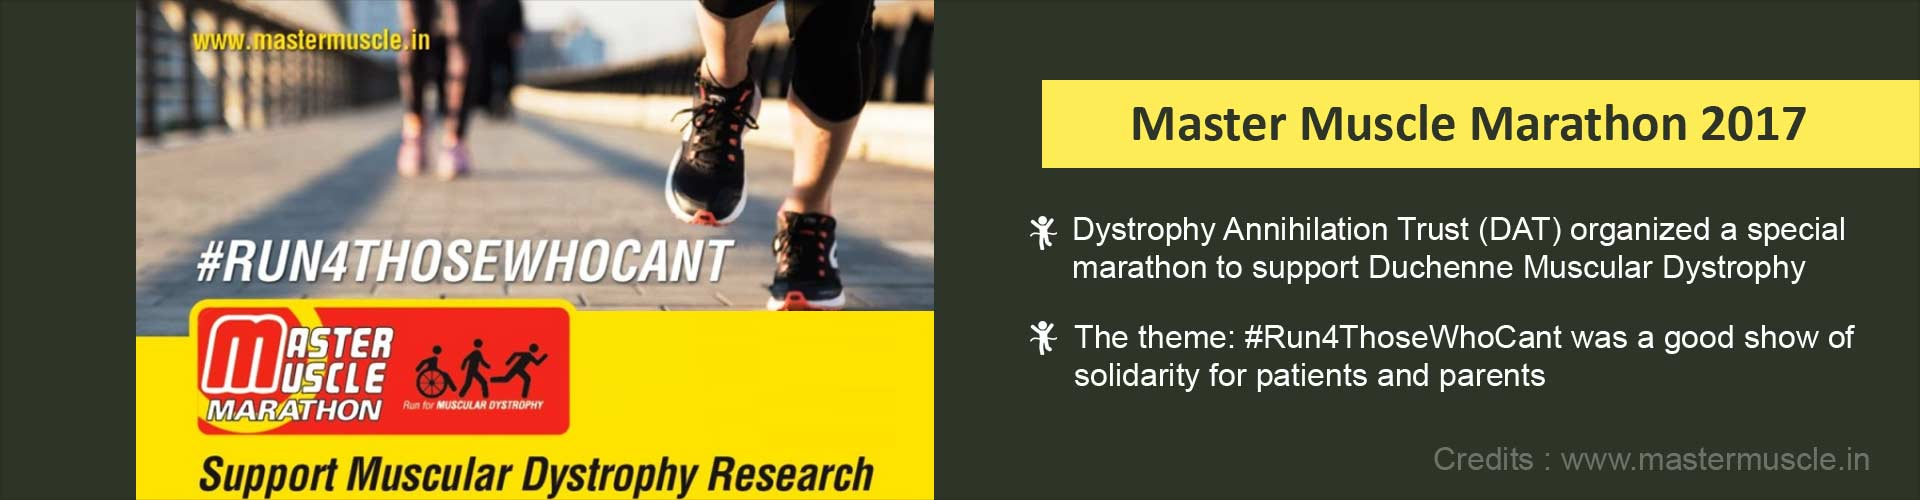 Master Muscle Marathon 2017